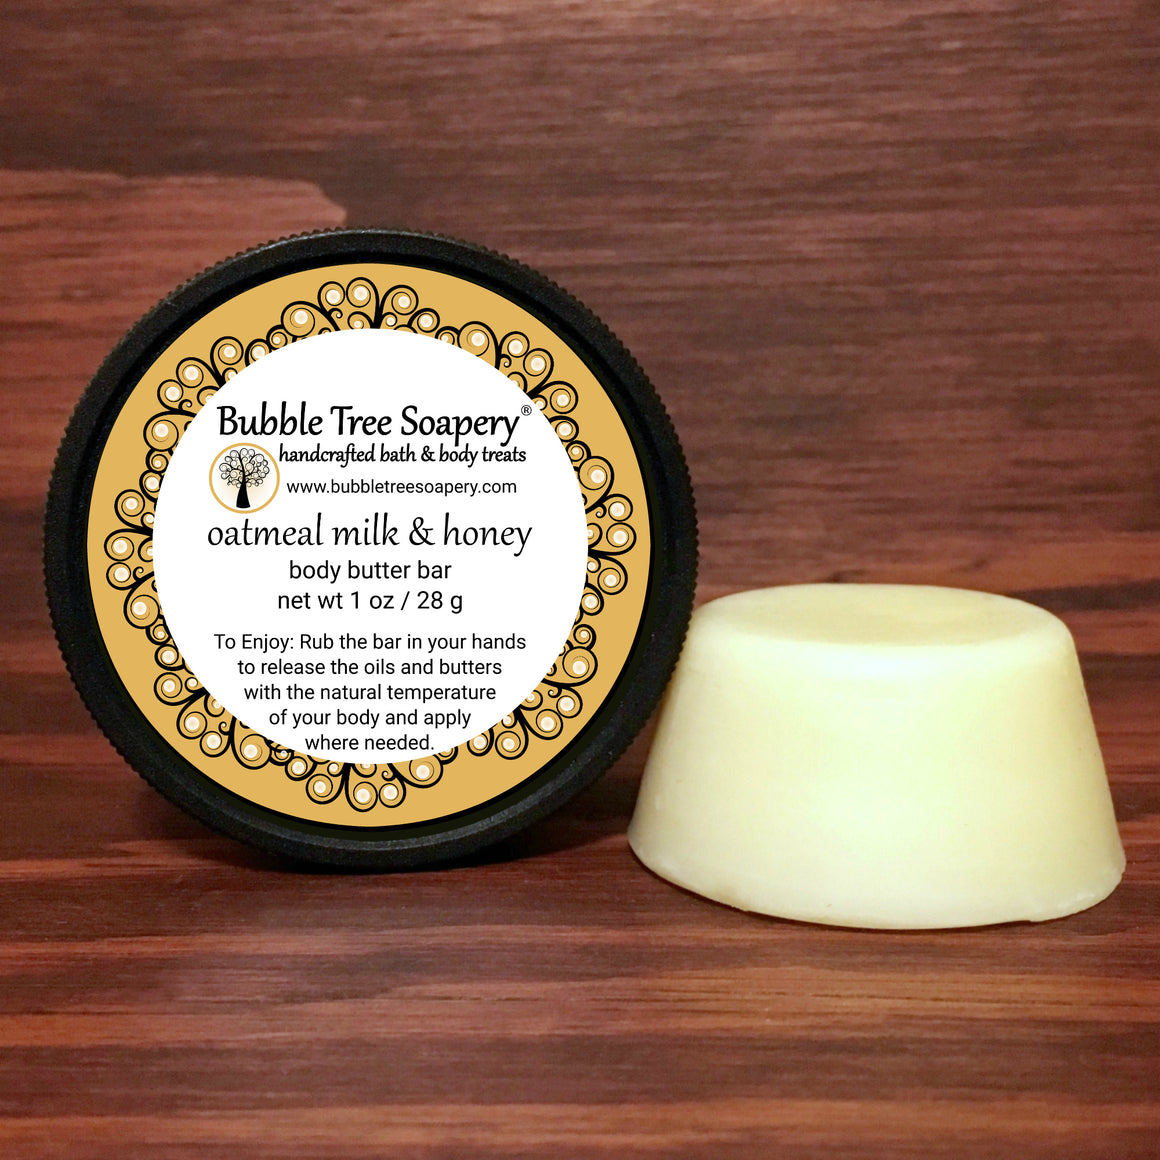 Oatmeal Milk & Honey Body Butter Bar | Bubble Tree Soapery